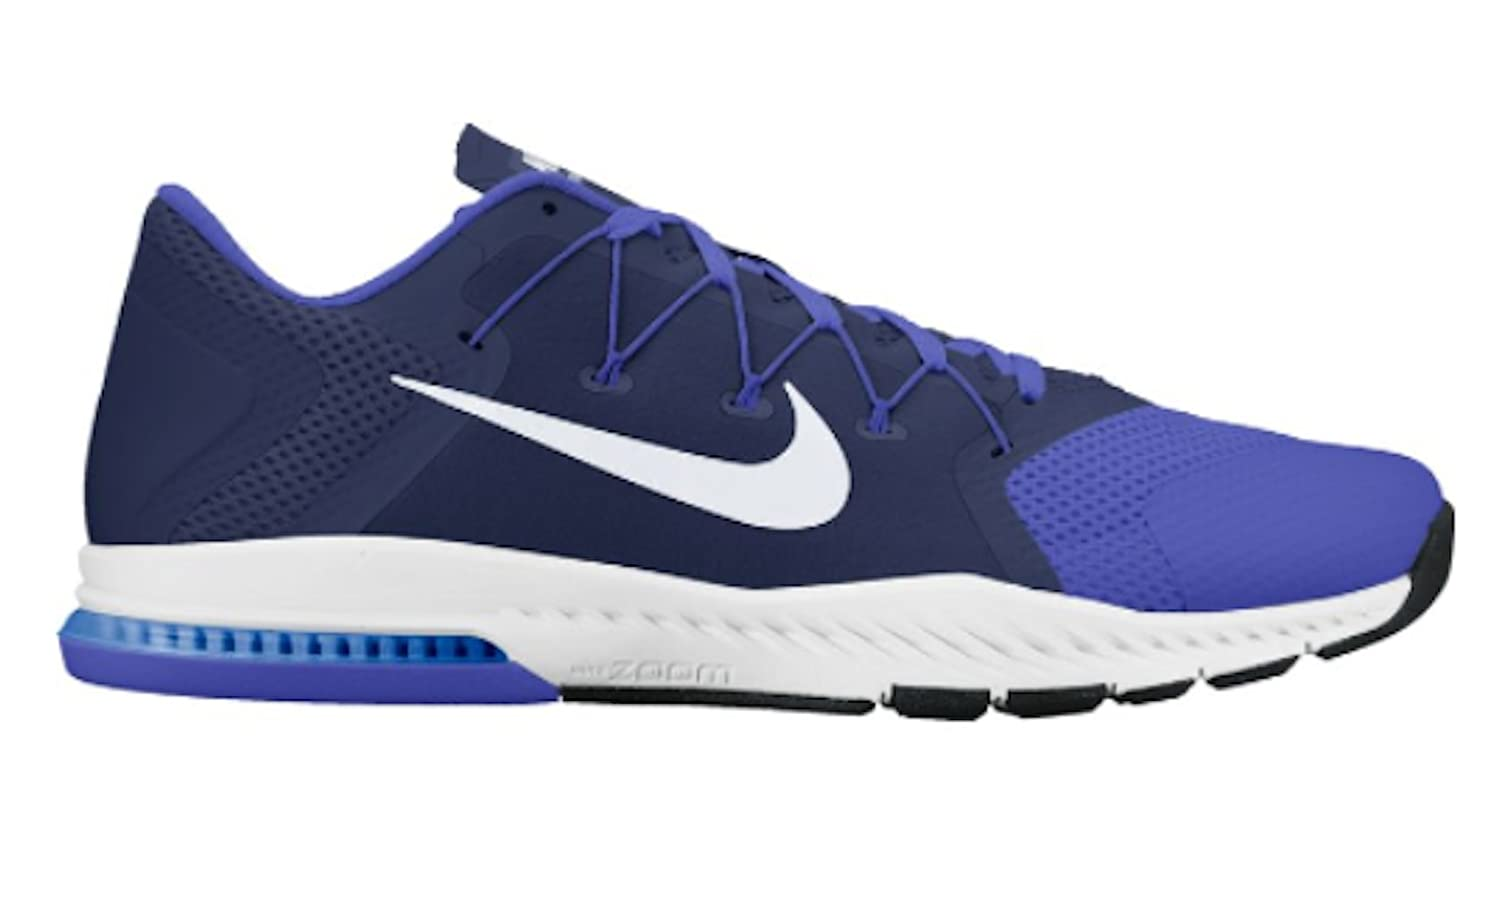 NIKE Air Zoom Train Complete Mens Running Trainers 882119 Sneakers Shoes B01FZ11MQO 12 D(M) US|Binary Blue / White - Paramount Blue -Tart